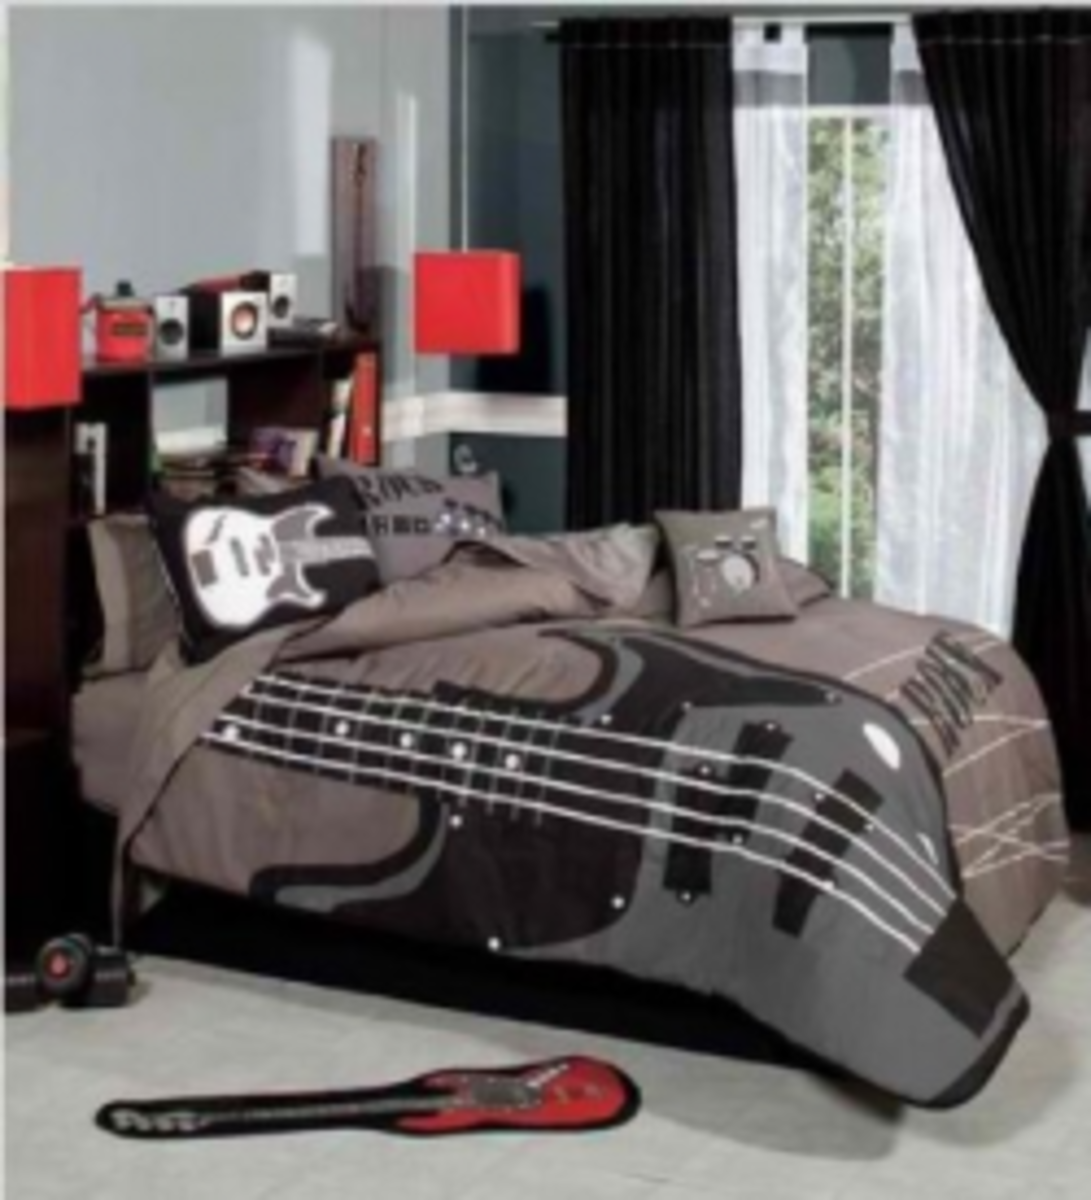 decor ideas for bedroom rock n roll bedroom decor ideas 17132